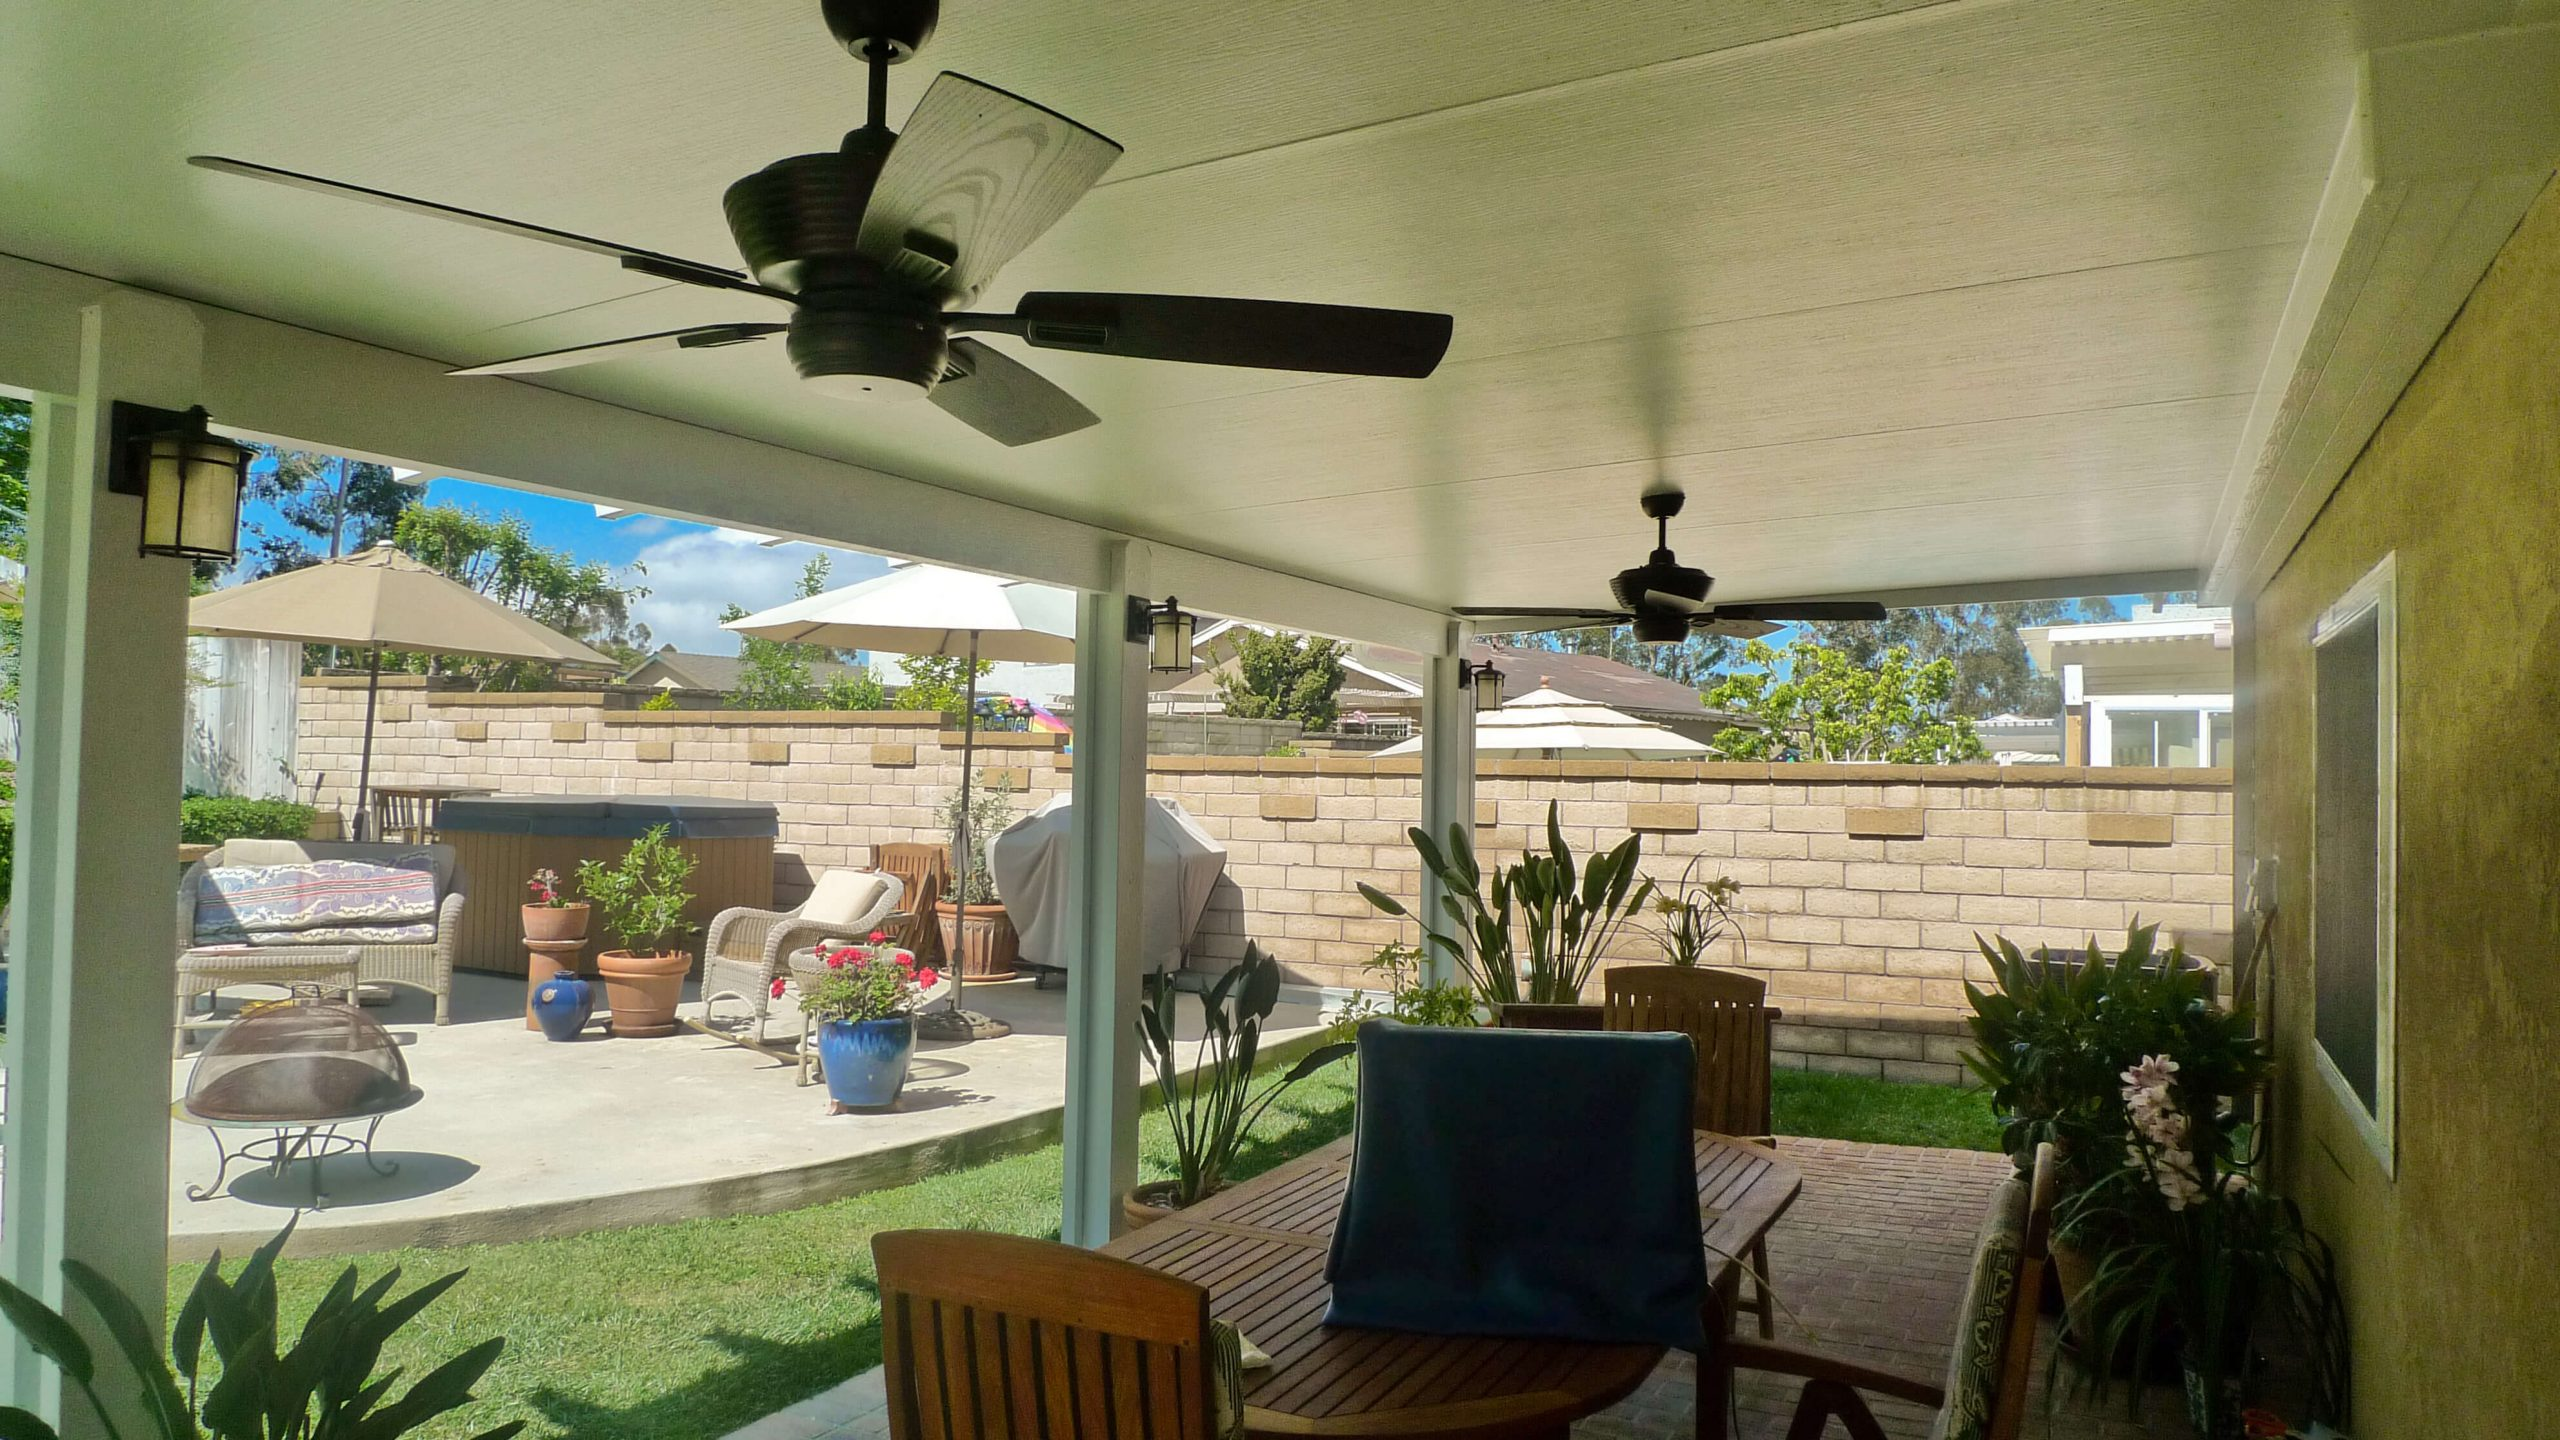 Underside of a Solid Insulated Patio Cover with 2 Ceiling Fans and LED Lights in Santa Ana, CA